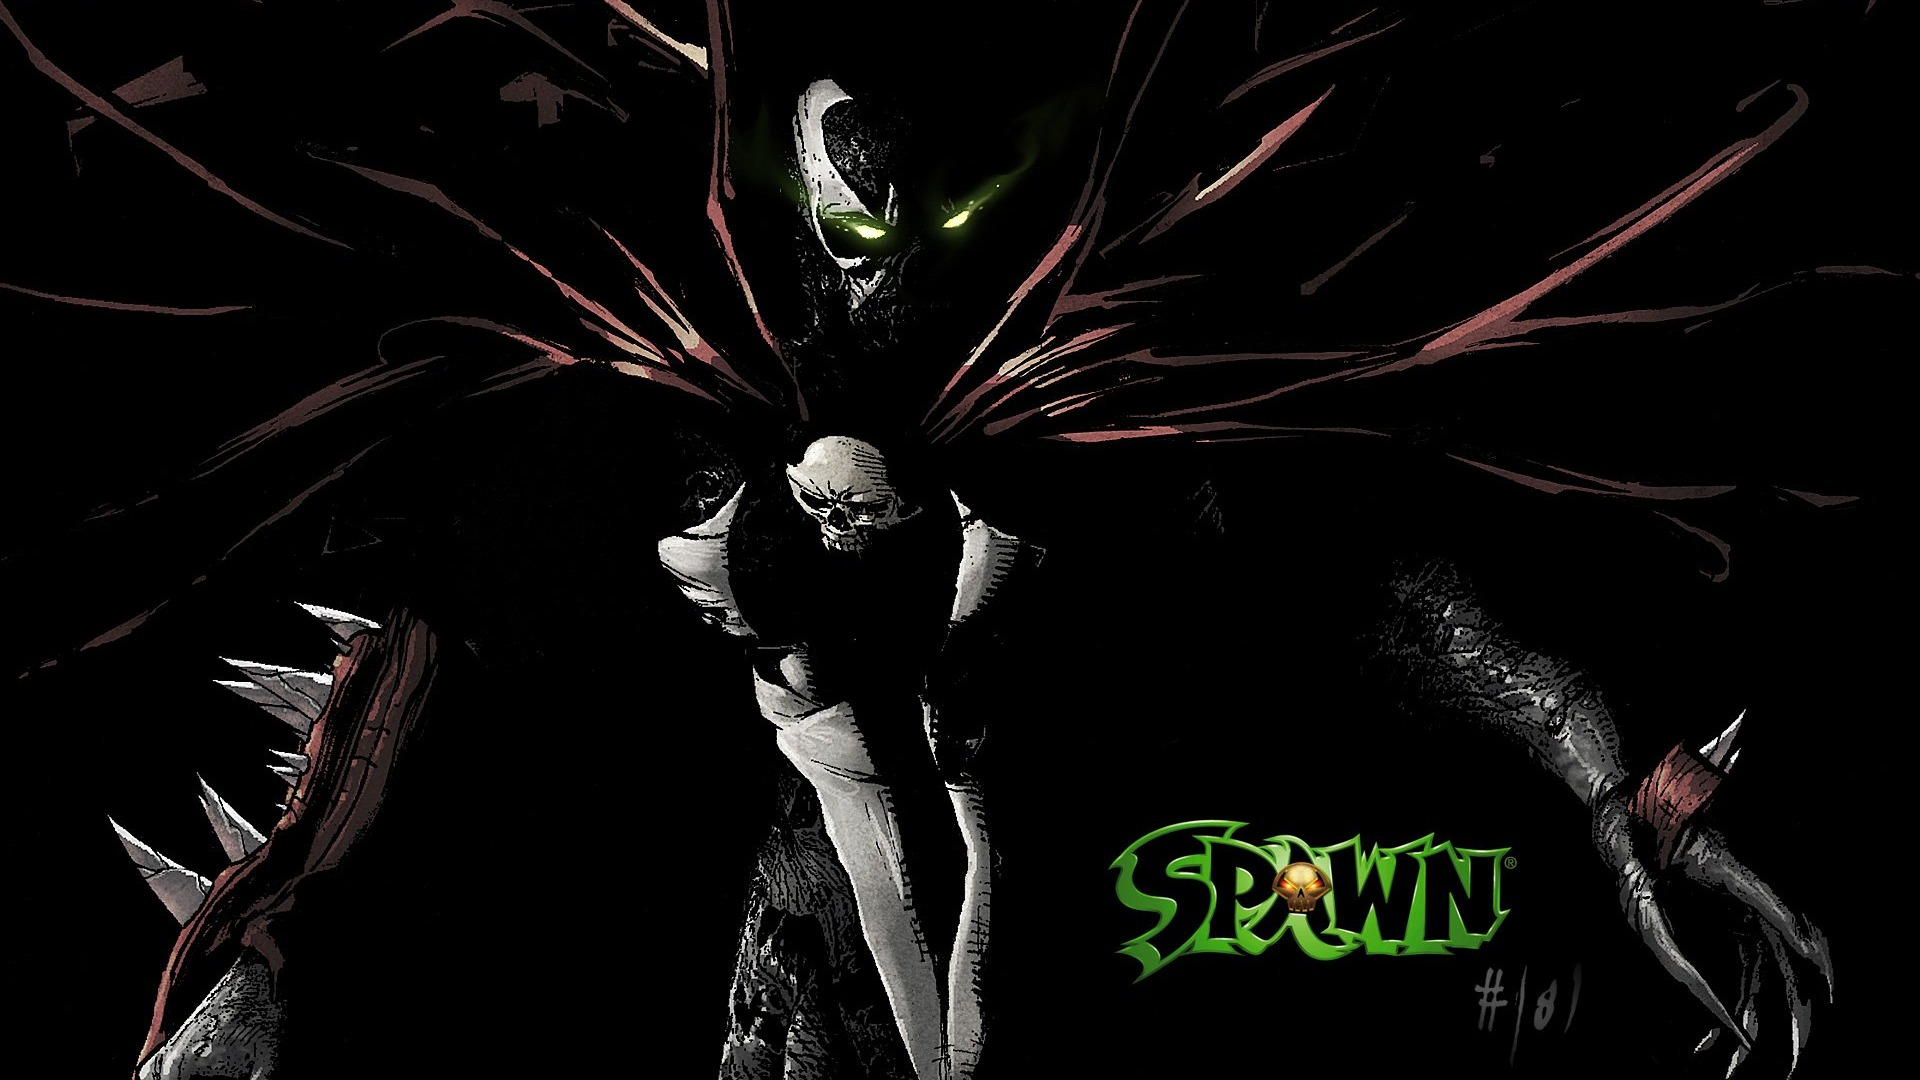 Spawn HD Wallpapers 21